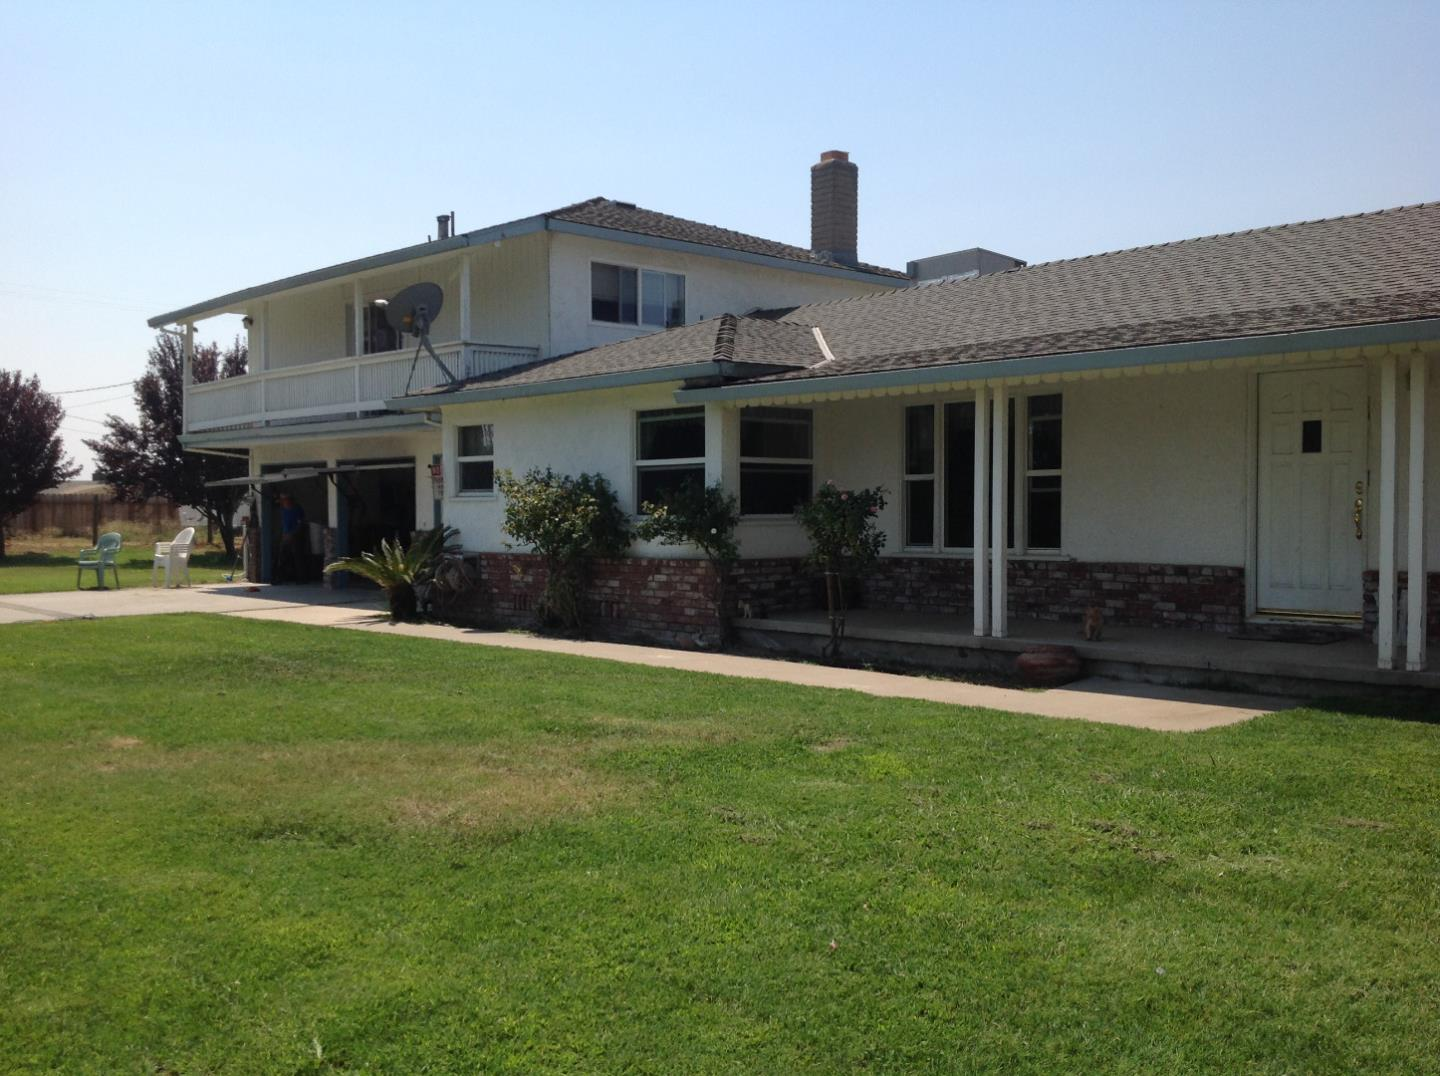 Single Family Home for Sale at 2551 Lovelace Road 2551 Lovelace Road Manteca, California 95336 United States